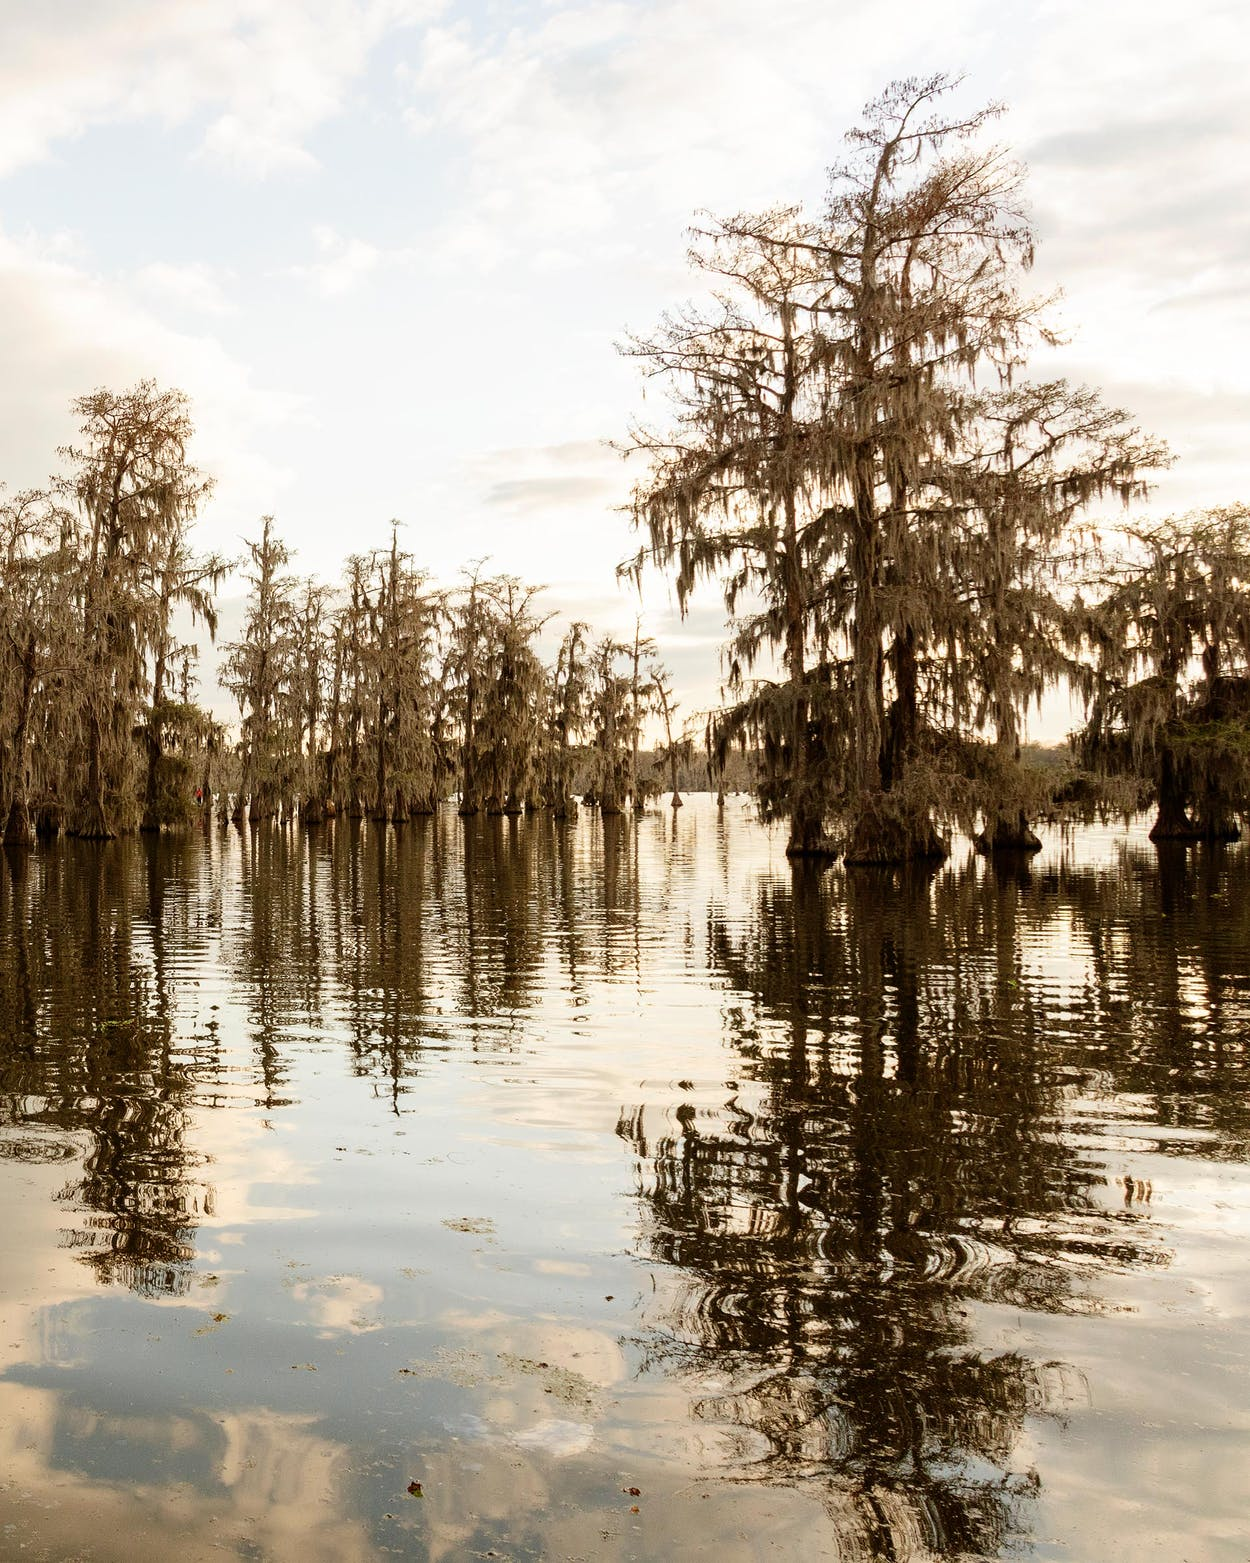 Lake Martin, just south of Breaux Bridge and east of Lafayette.